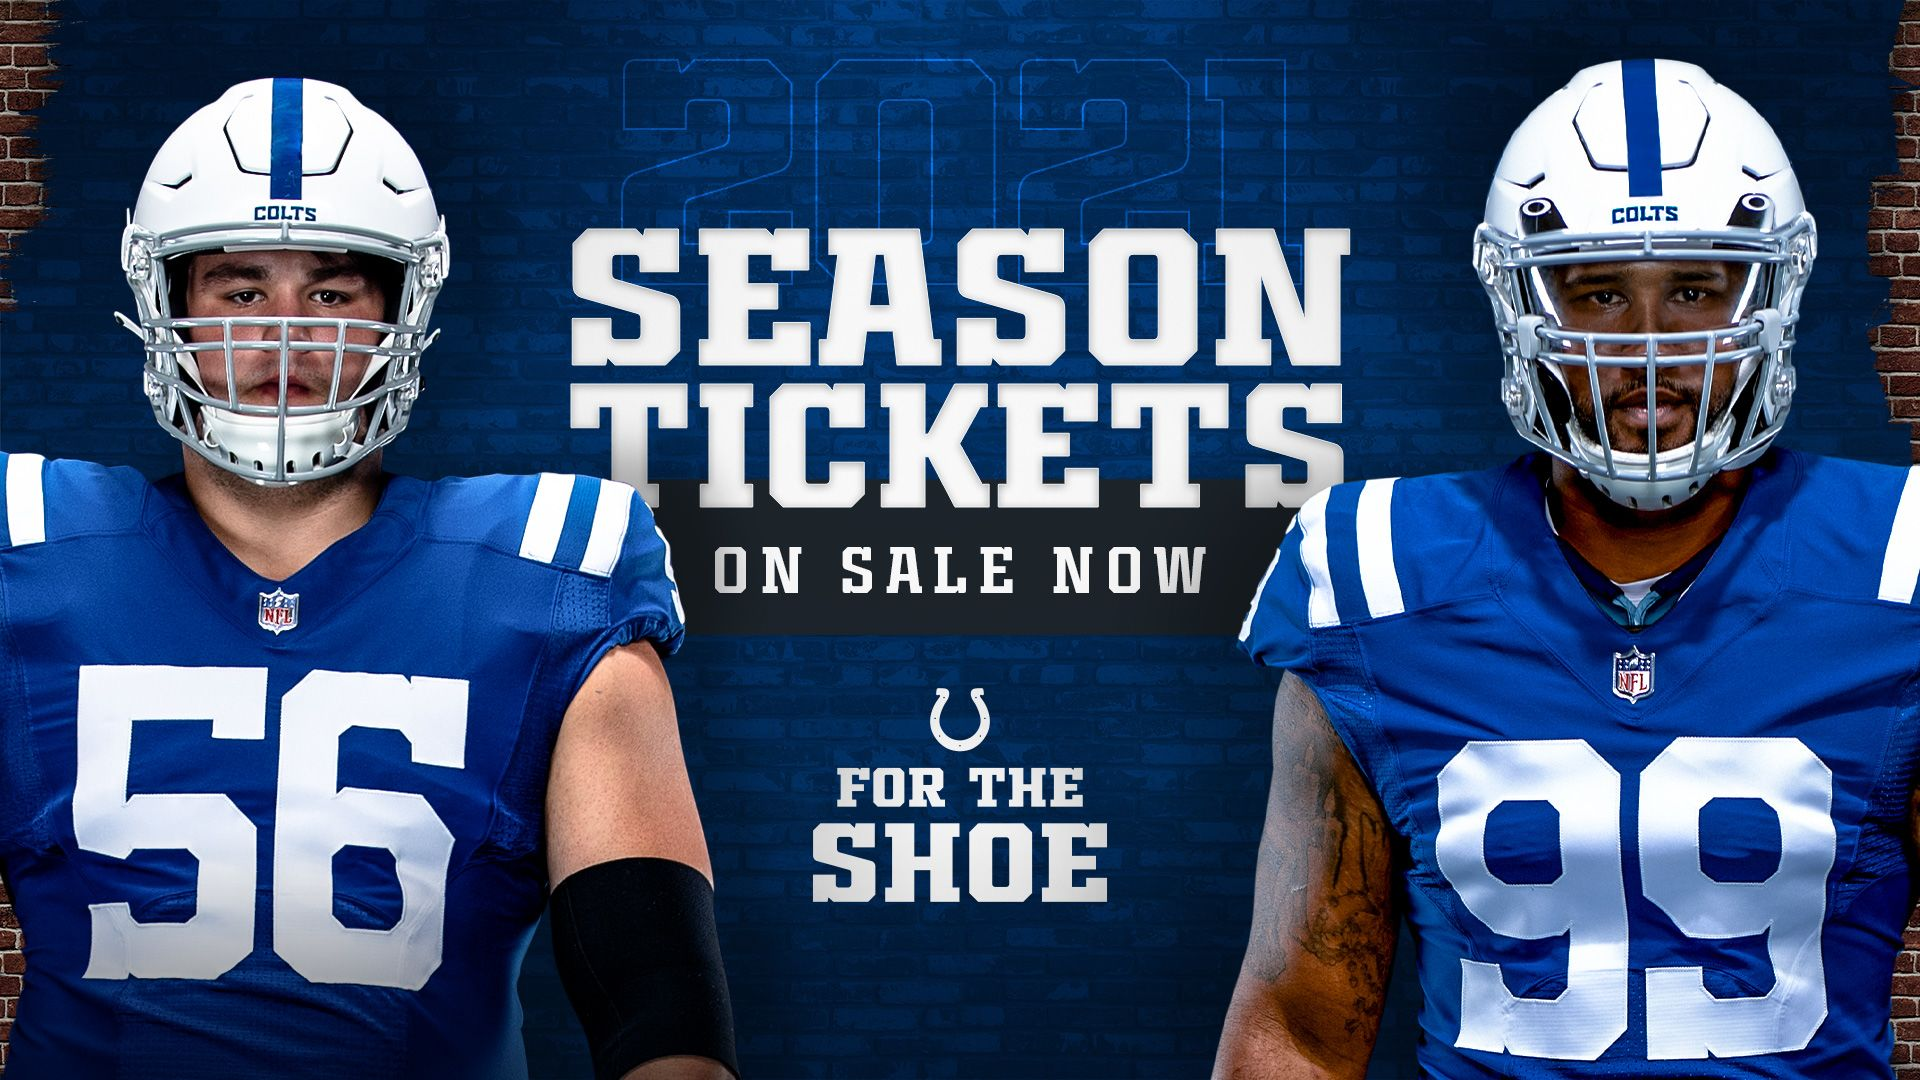 Season Tickets On Sale!